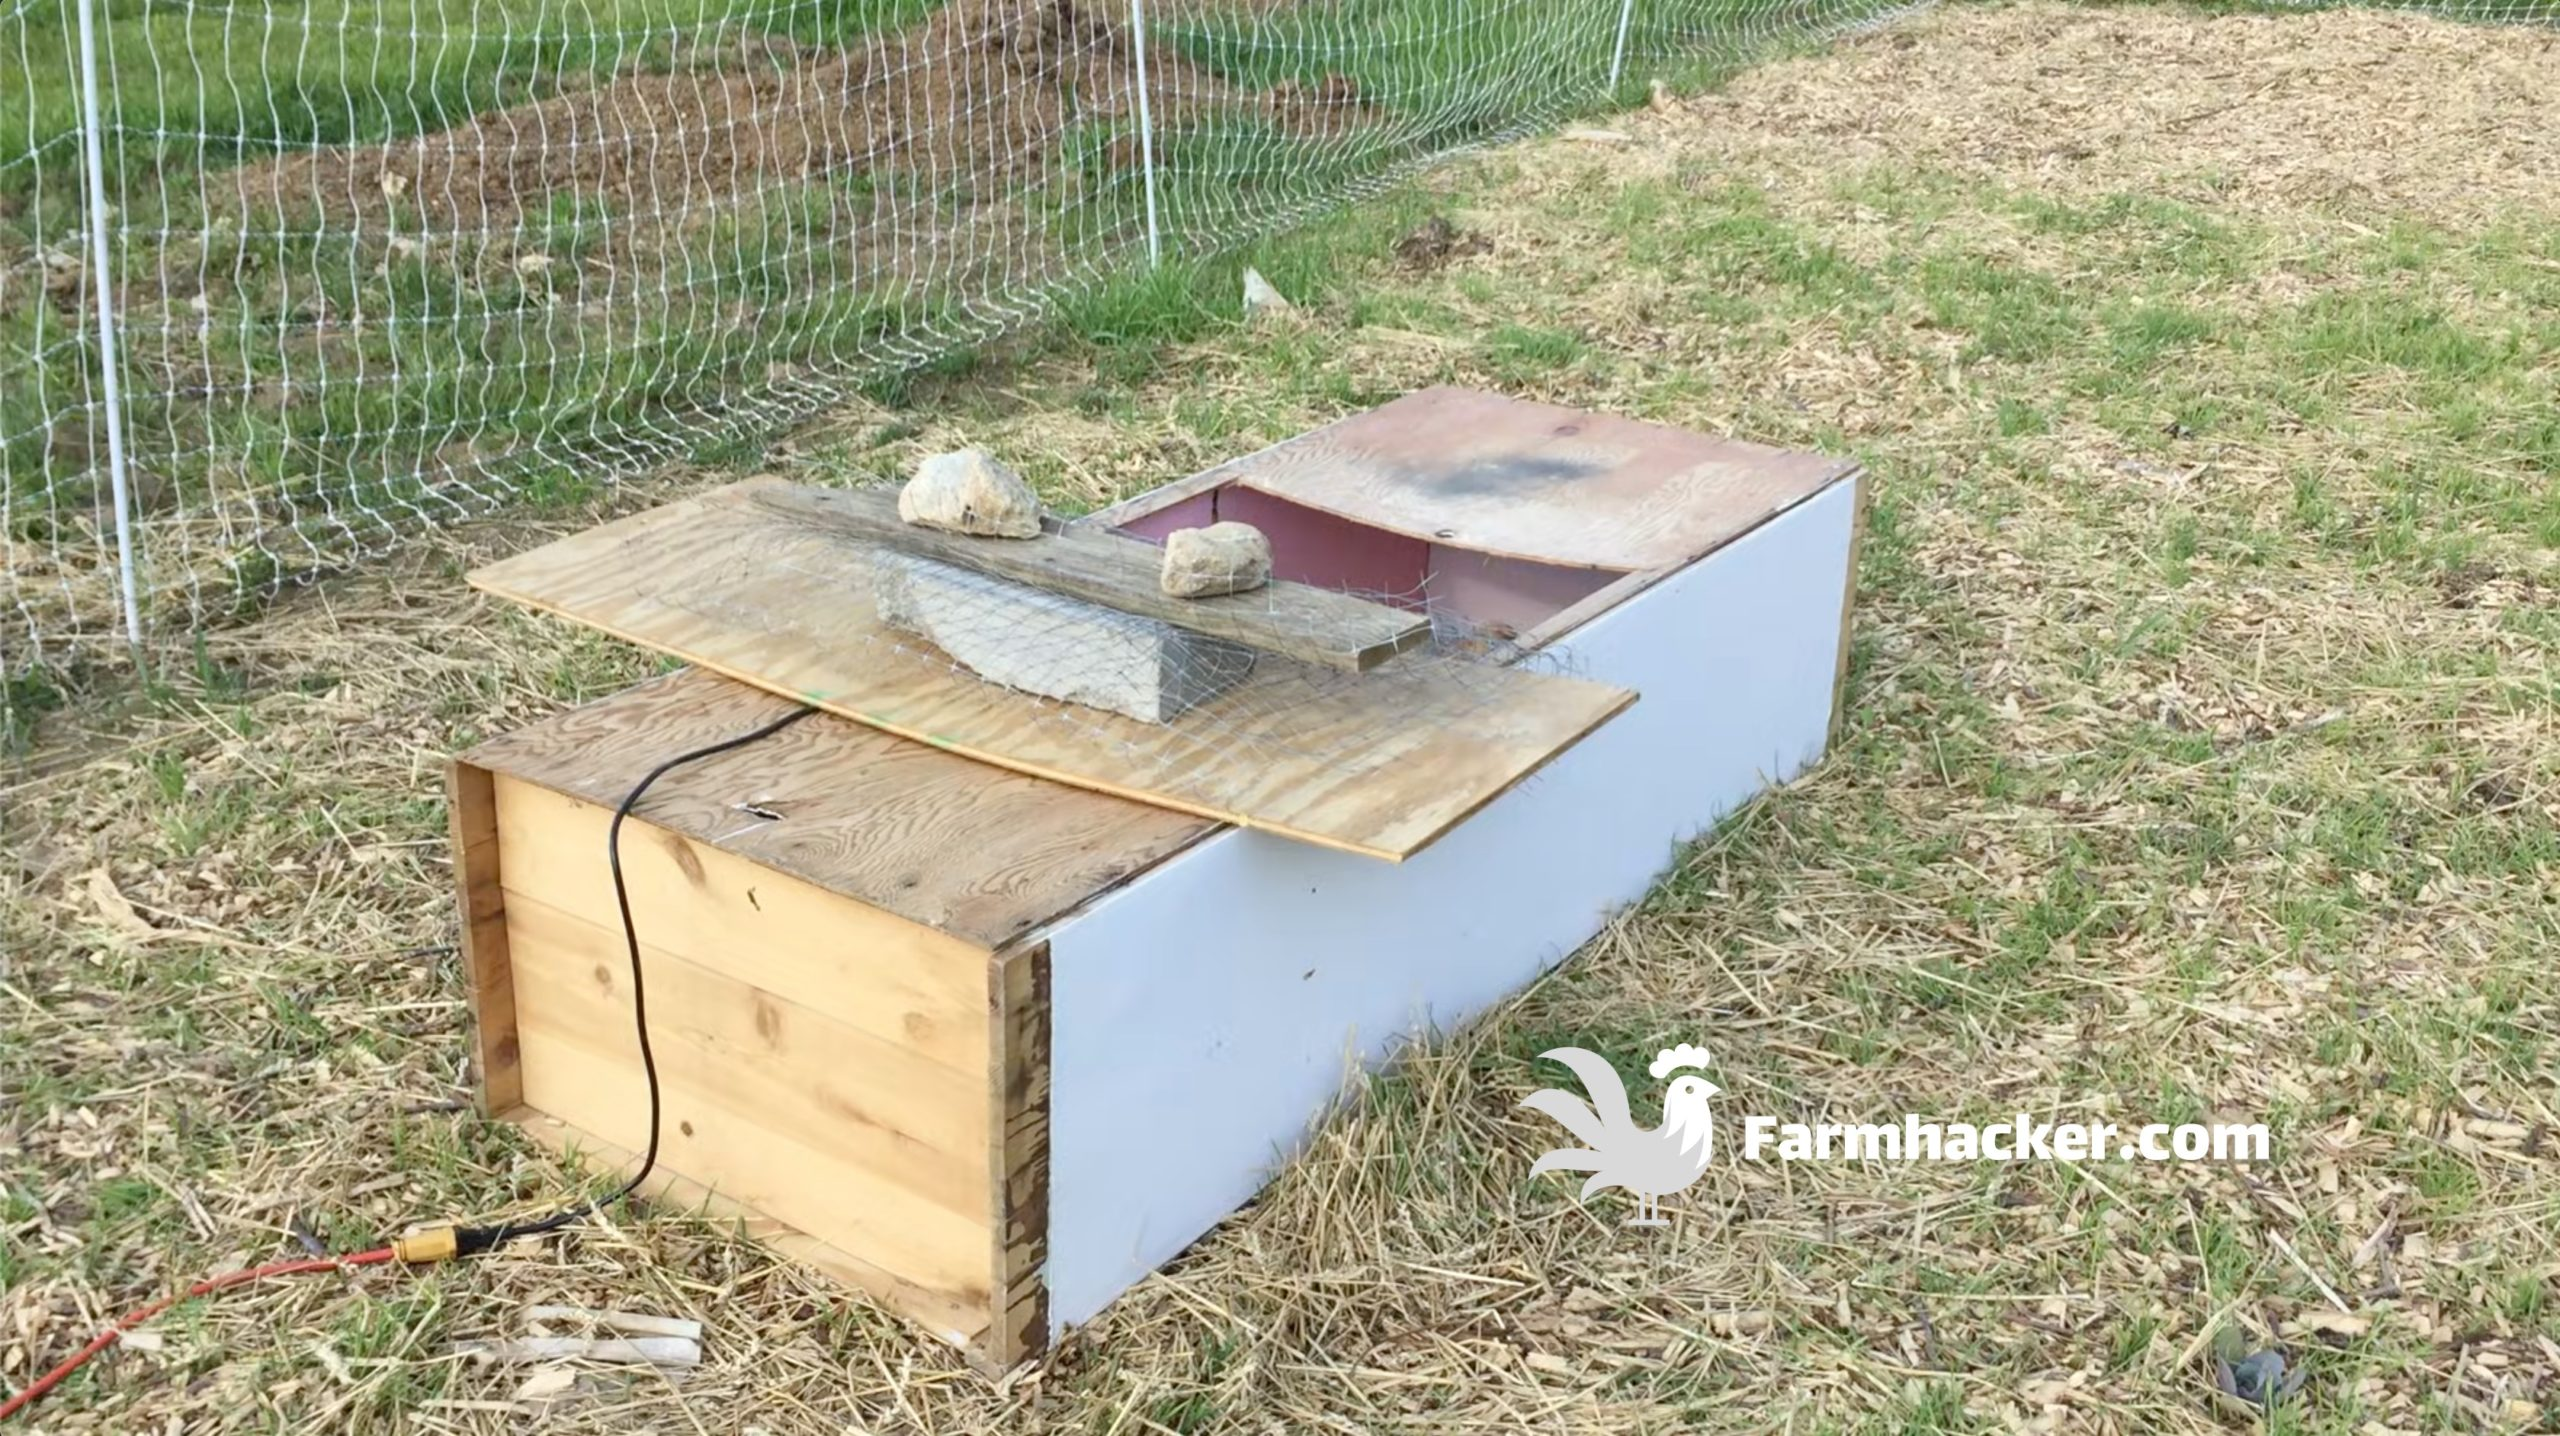 How to Build a Chicken Brooder